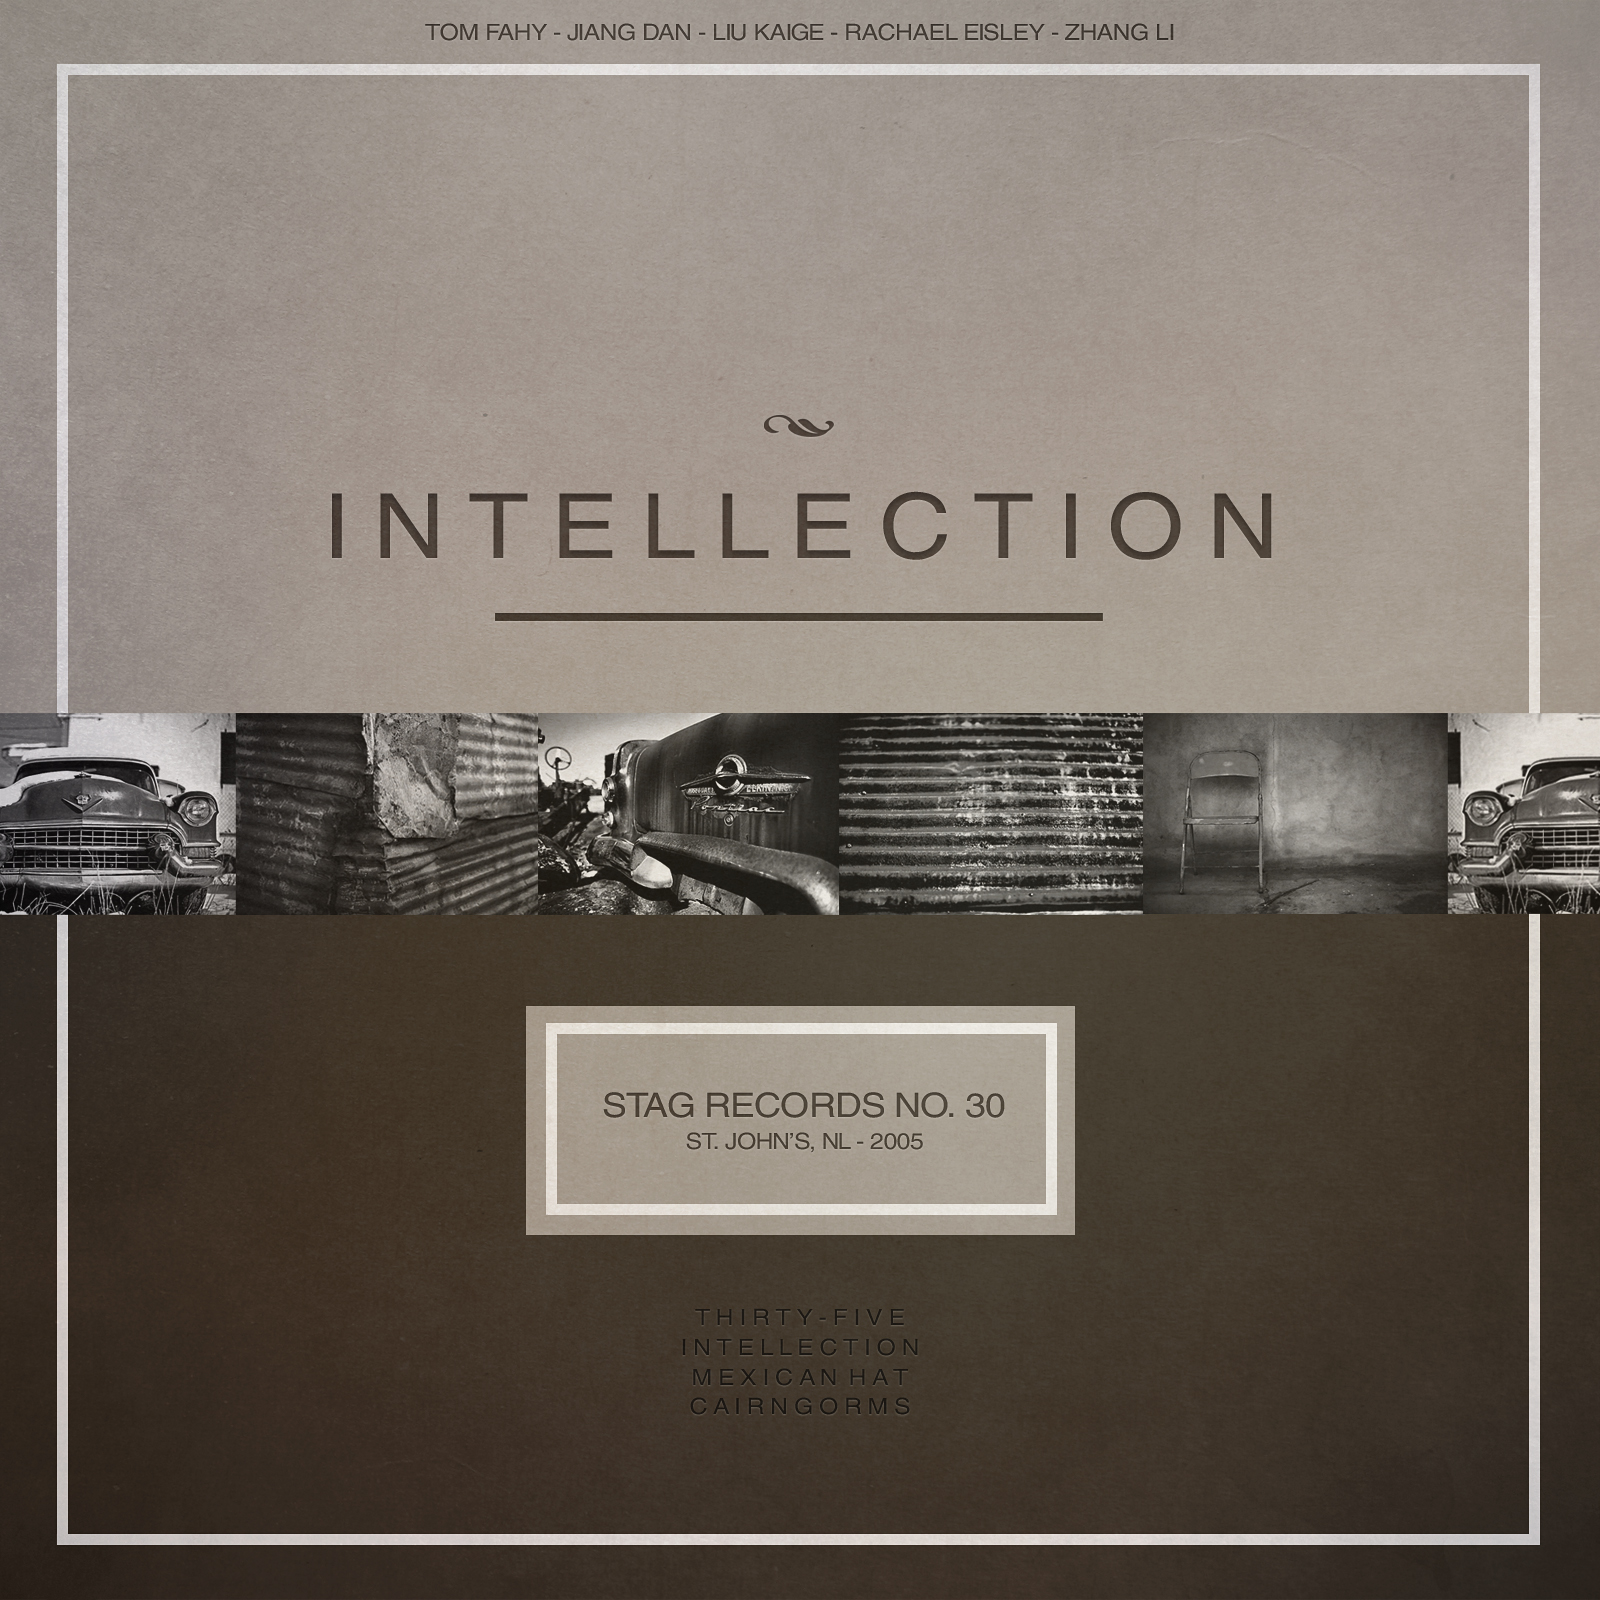 Intellection, by Tom Fahy (2005)